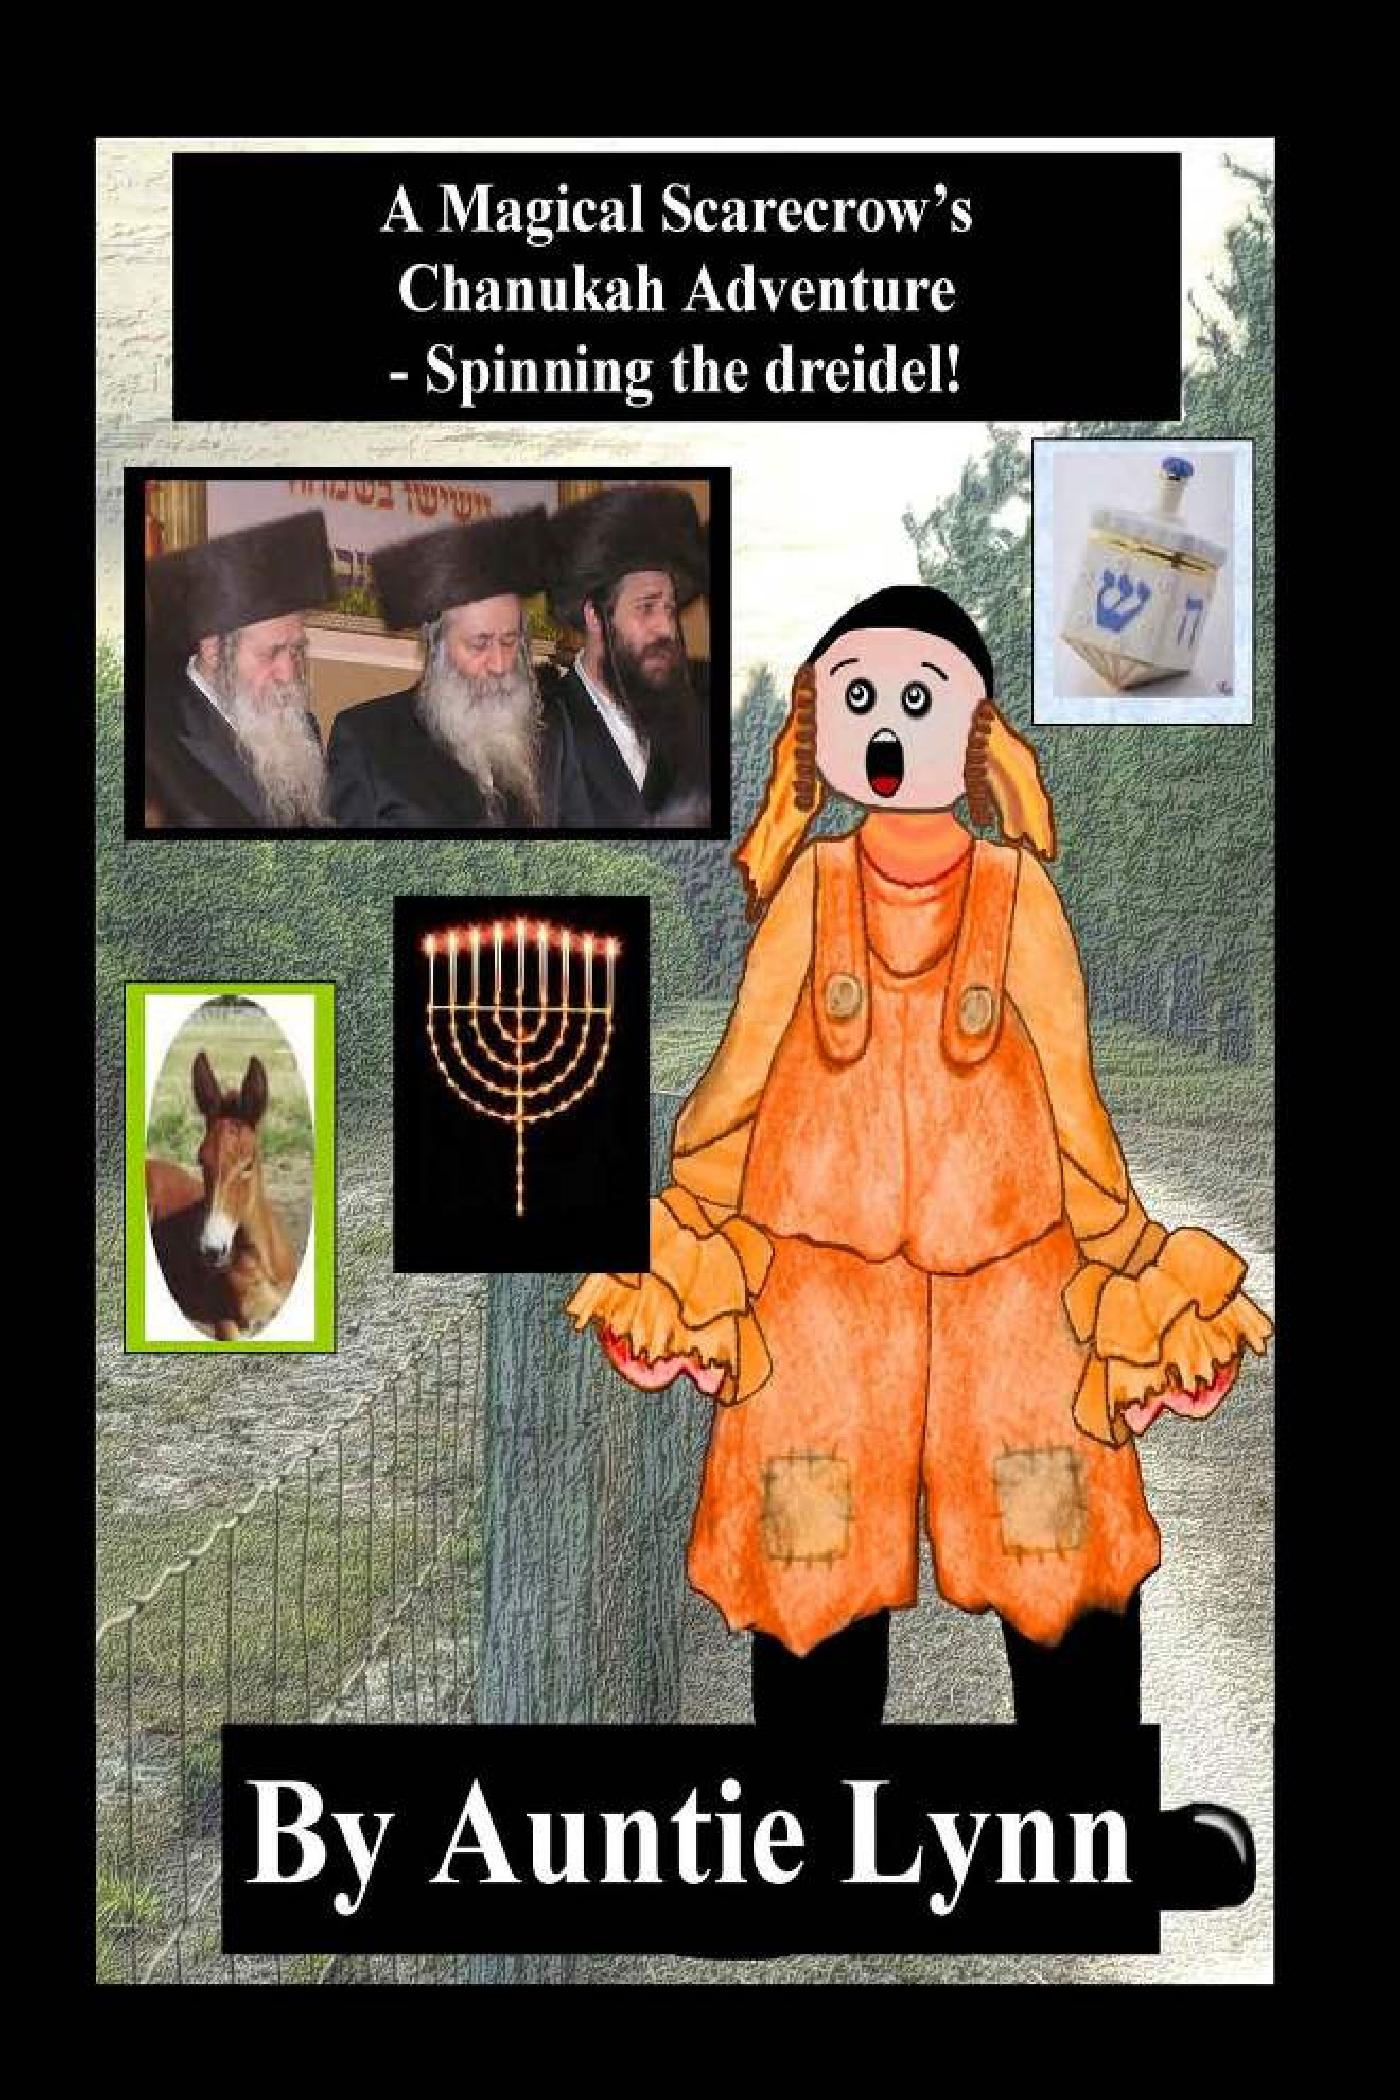 A MAGICAL SCARECROW'S CHANUKAH ADVENTURE